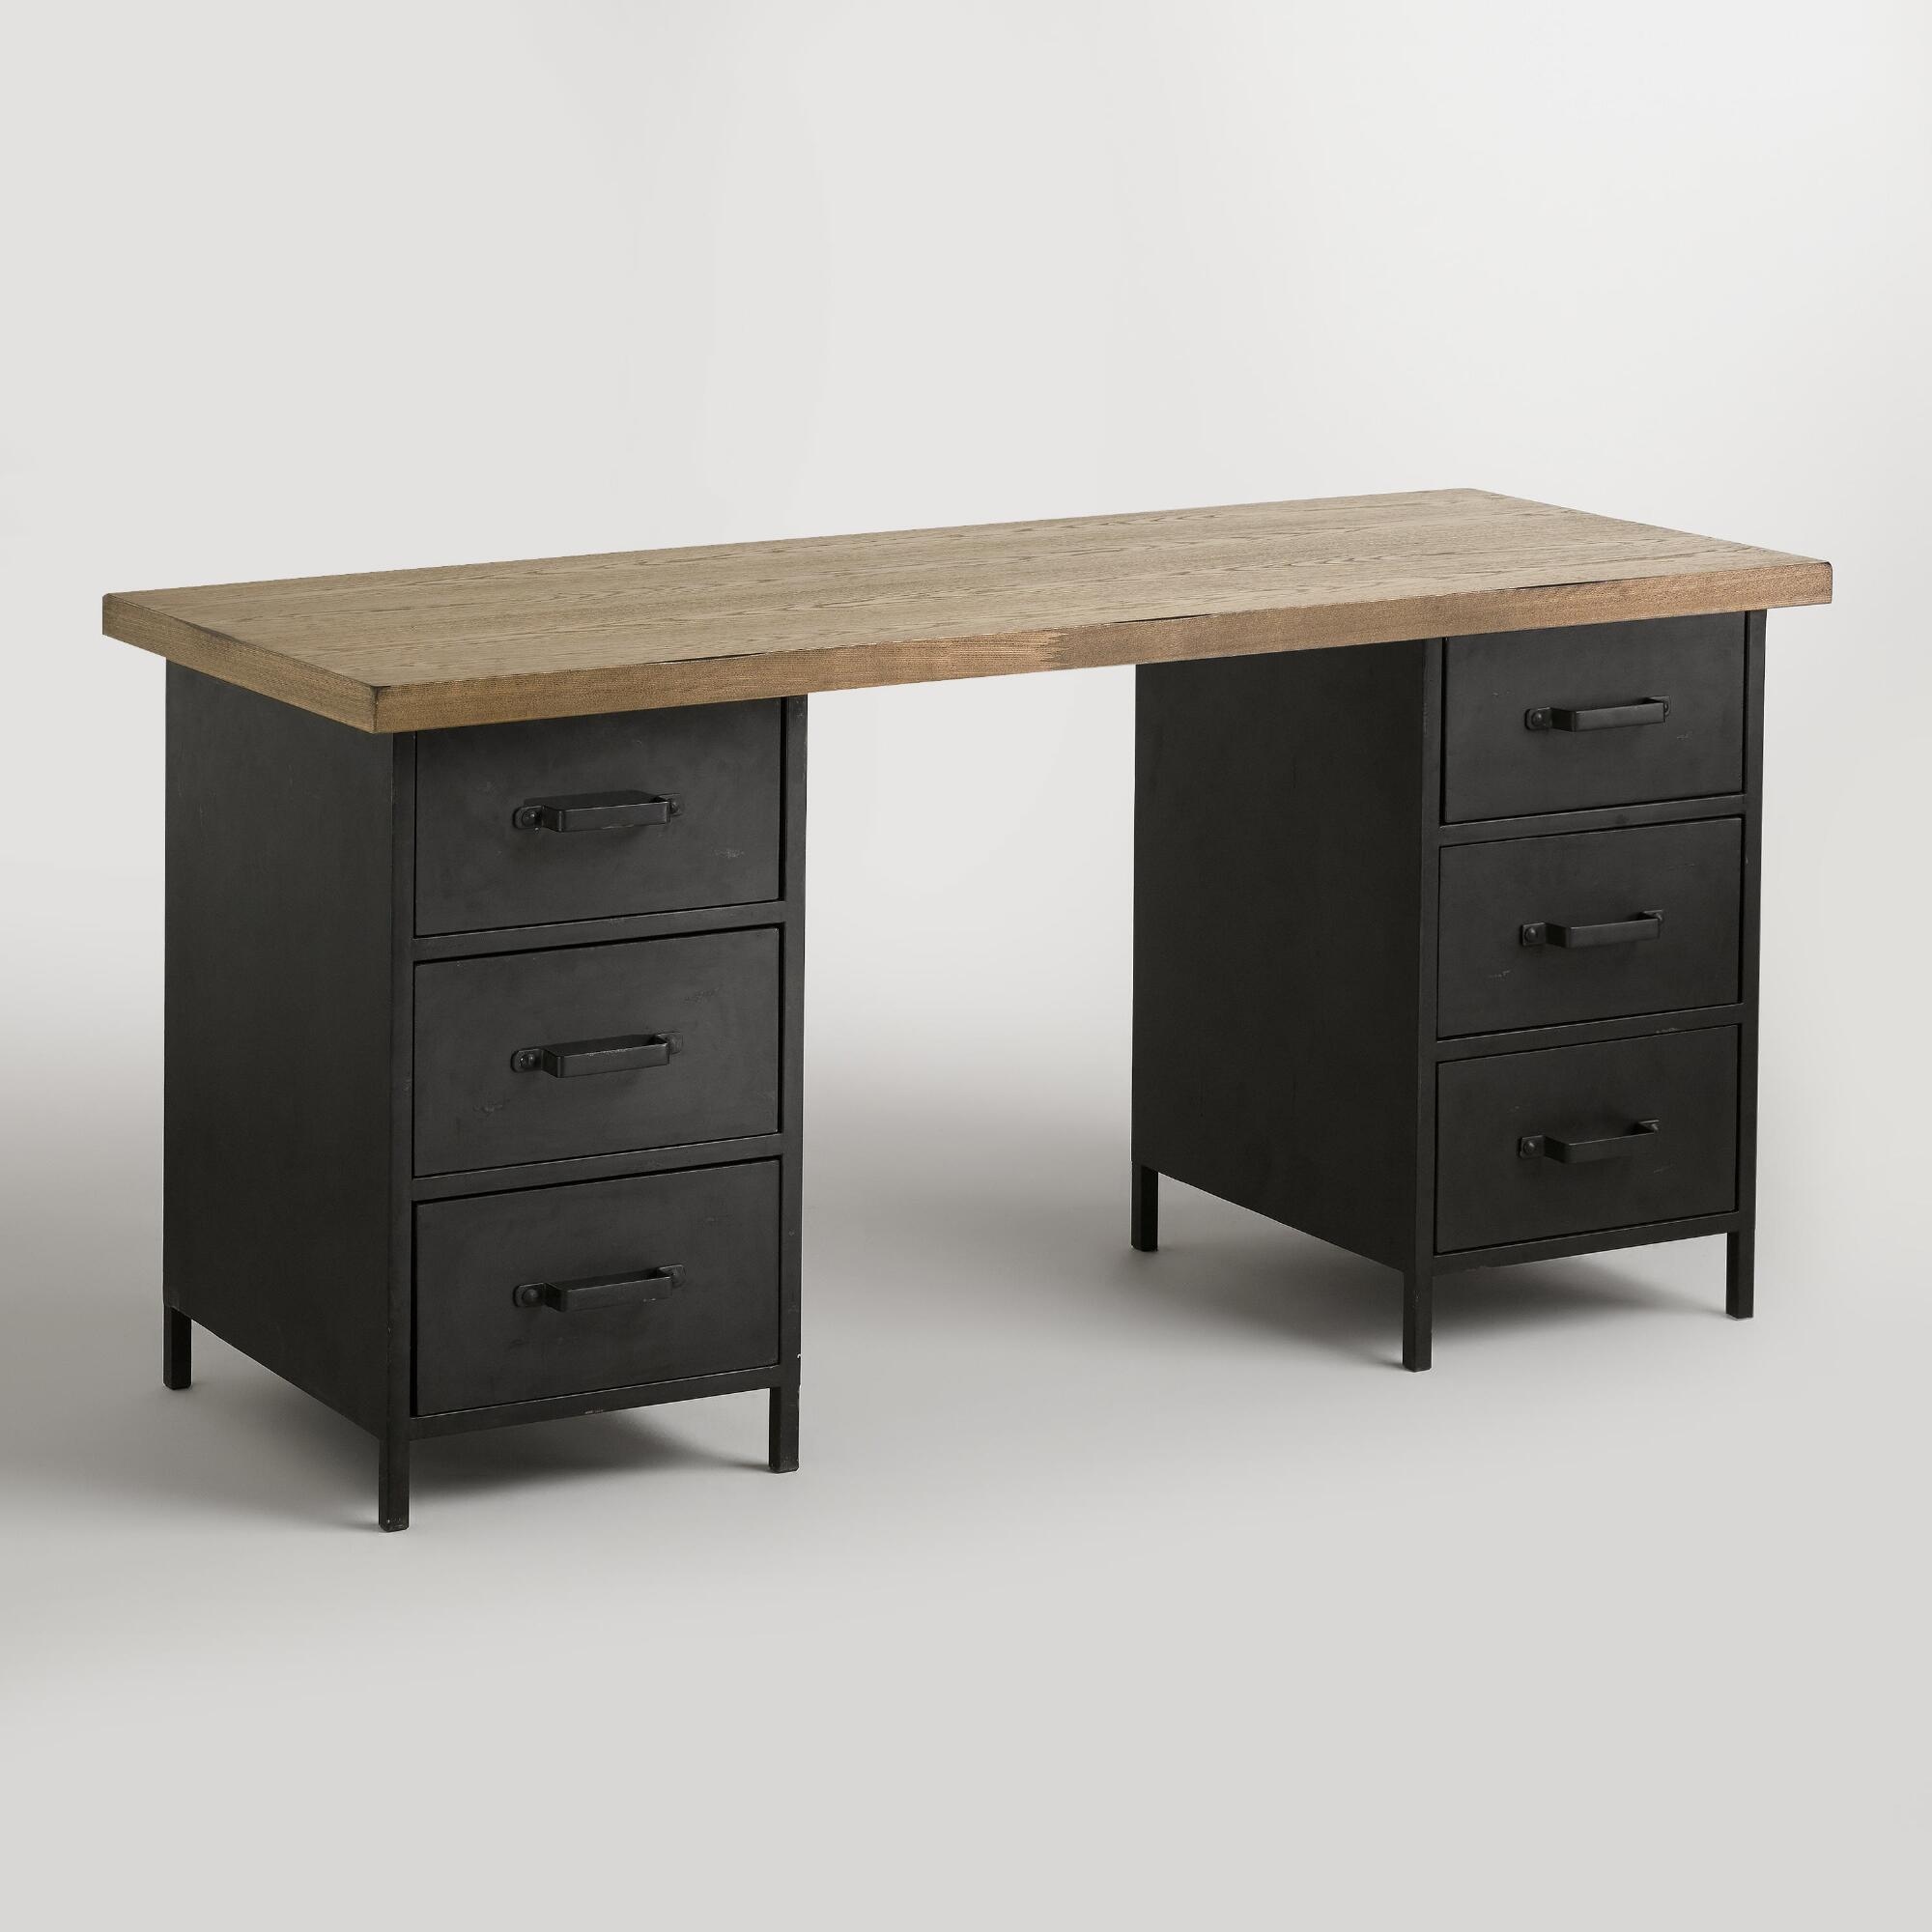 natural wood and metal drawer colton mix match desk. Black Bedroom Furniture Sets. Home Design Ideas